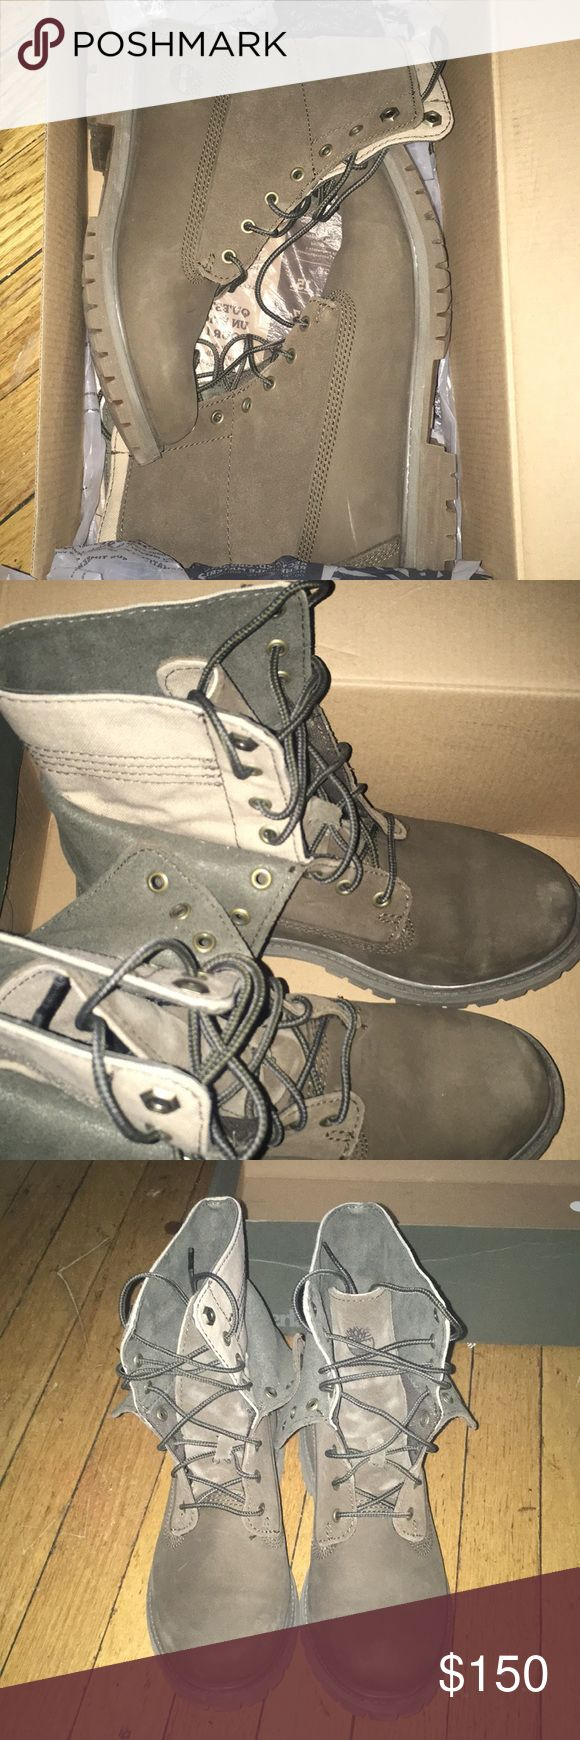 Timberland boots Timberland Authentics Double Fold-down Olive Green Nubuck Boots. Boots have been worn a handful of times. Few scratches and scruff marks. Reasonable offers please! Timberland Shoes Winter & Rain Boots